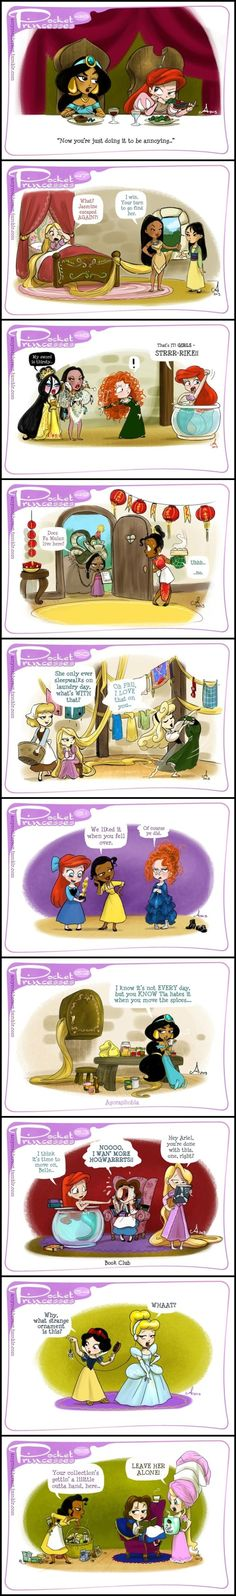 Pocket Princesses (Part 5) by Amy Mebberson by susangir